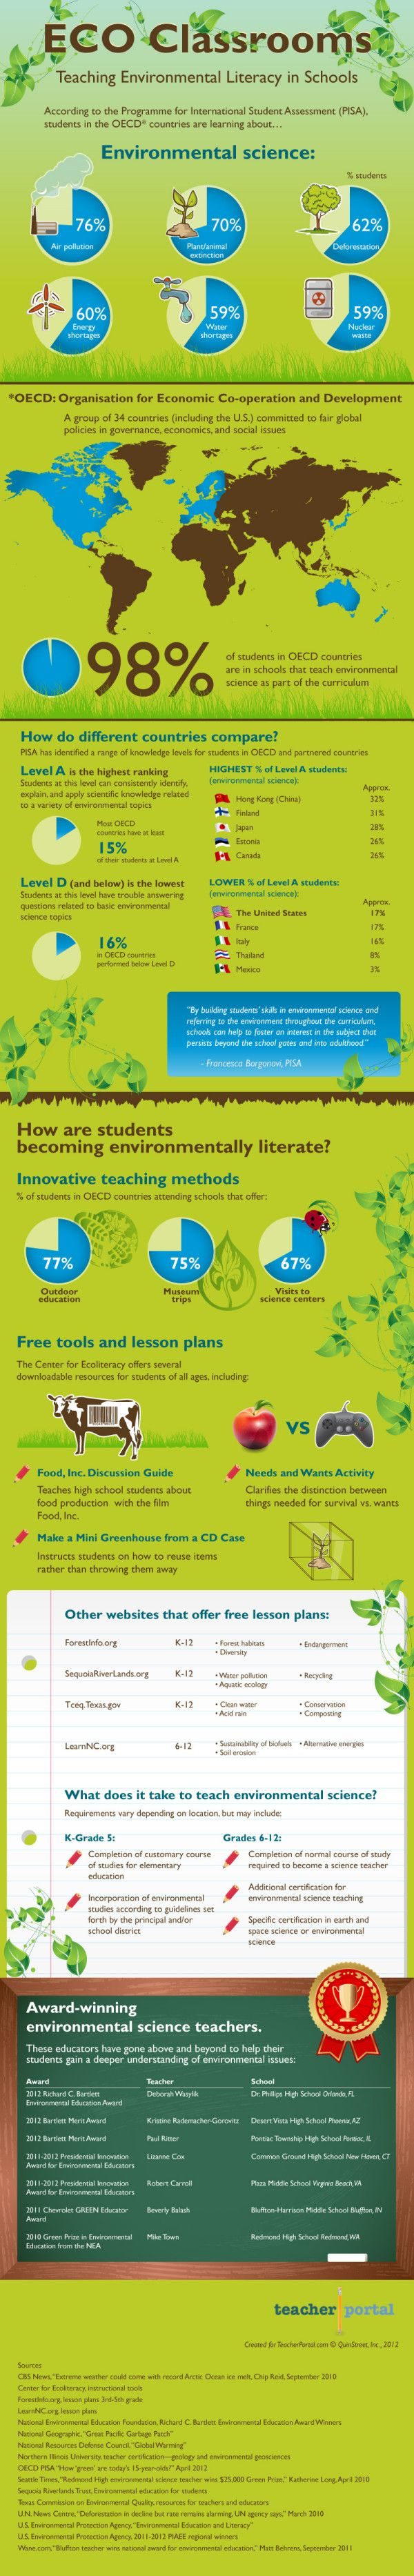 The infographic is from Teacher Portal It takes a closer look at what educators can do to help students understand environmental issues